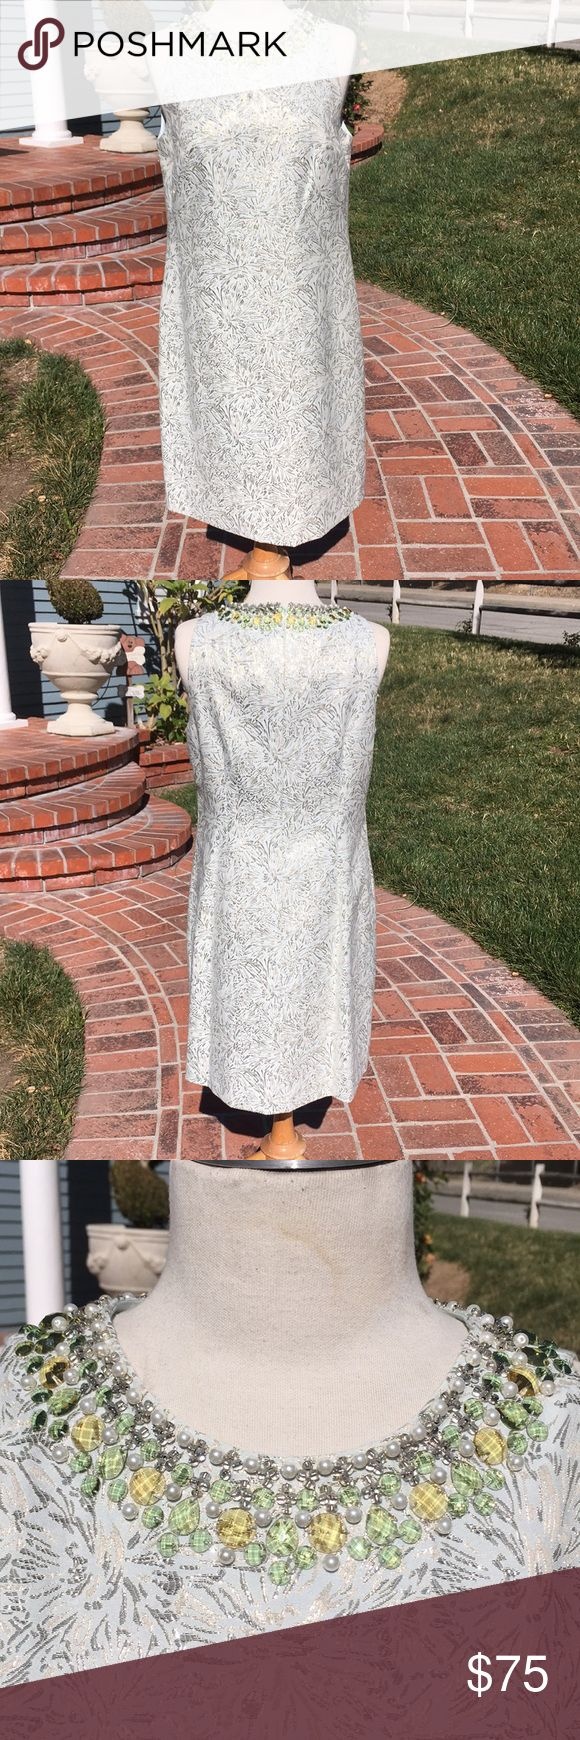 Maggy London mint green jeweled dress size 8 Maggy London mint green jeweled dress. Size 8. Gorgeous beading around neck. Dress has embedded silver metallic floral pattern. A perfect special occasion dress. Worn once, excellent condition Maggy London Dresses